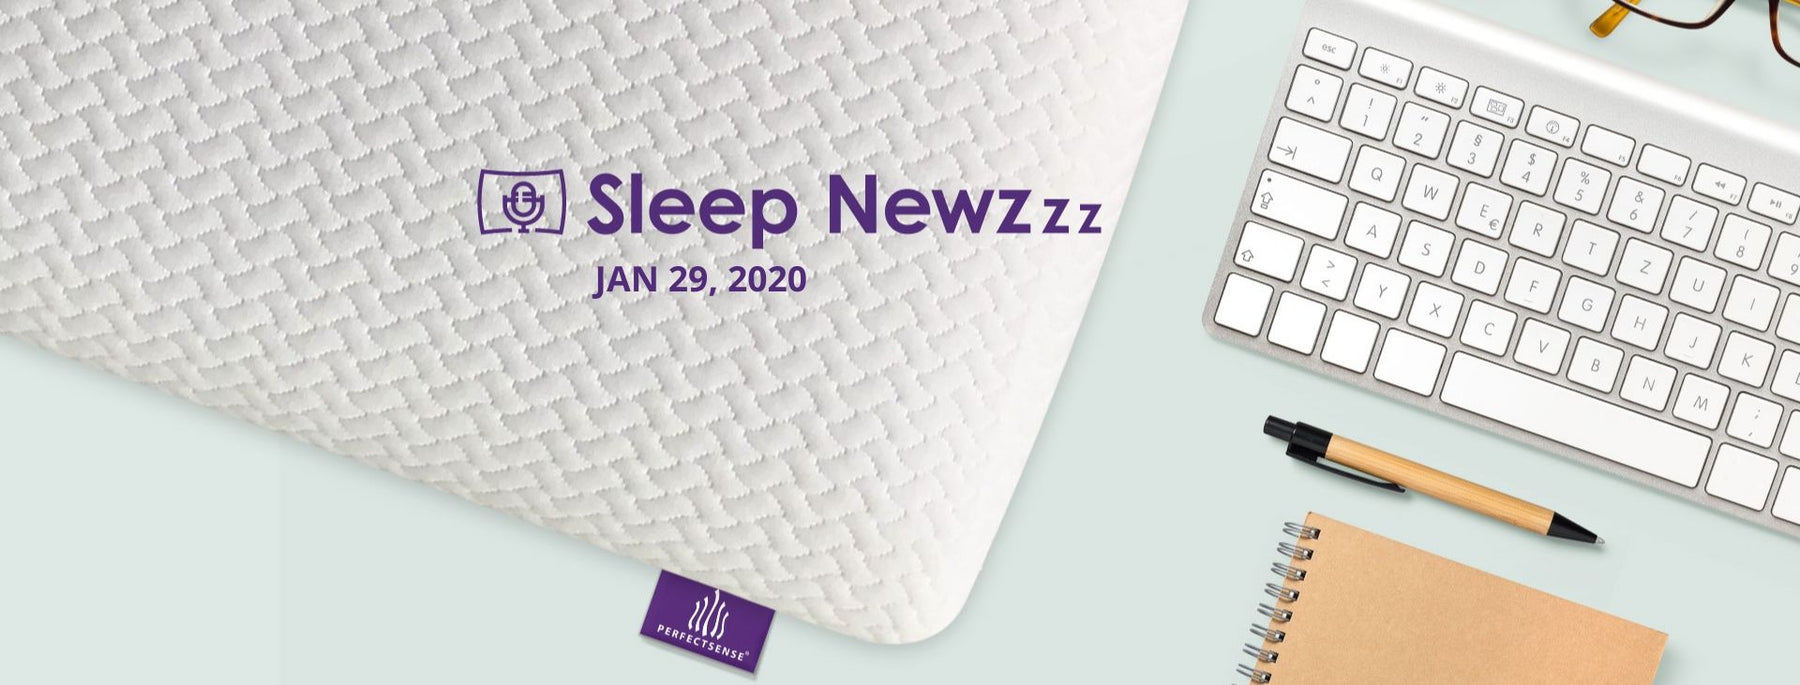 PerfectSense Sleep News: January 29, 2020